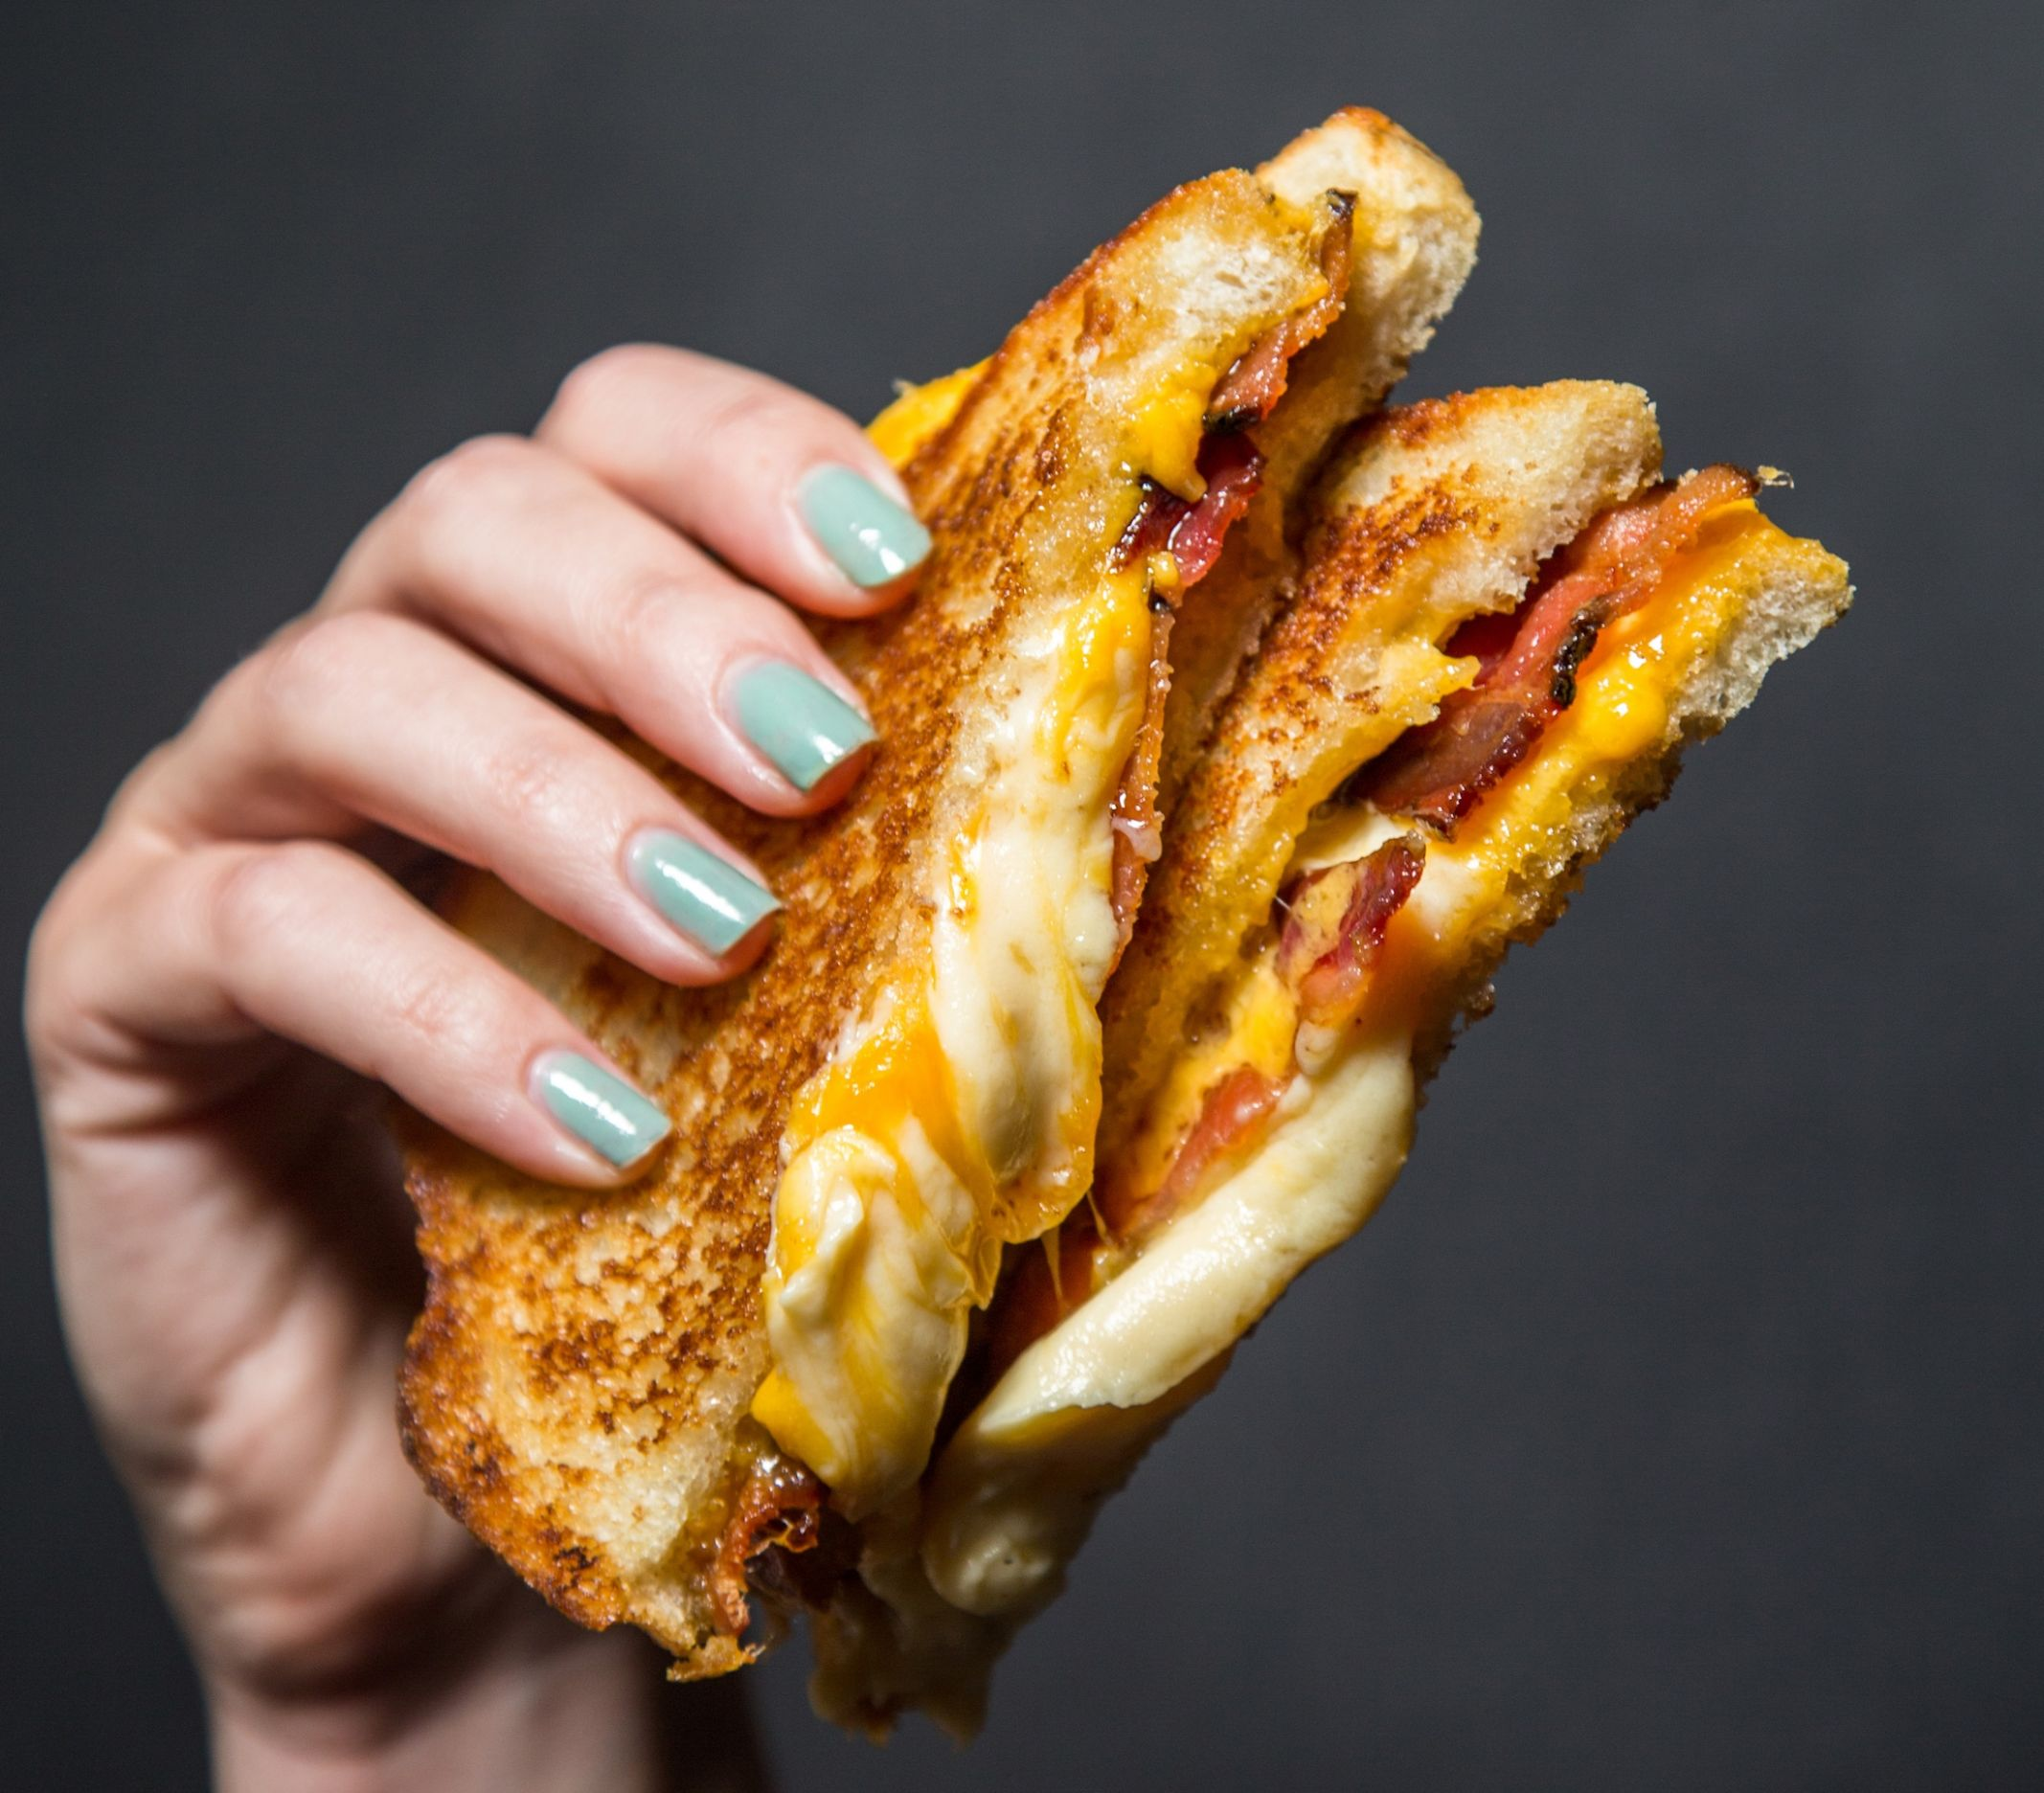 Make Melt's Maple Bacon Grilled Cheese - Recipes Sandwich Melts